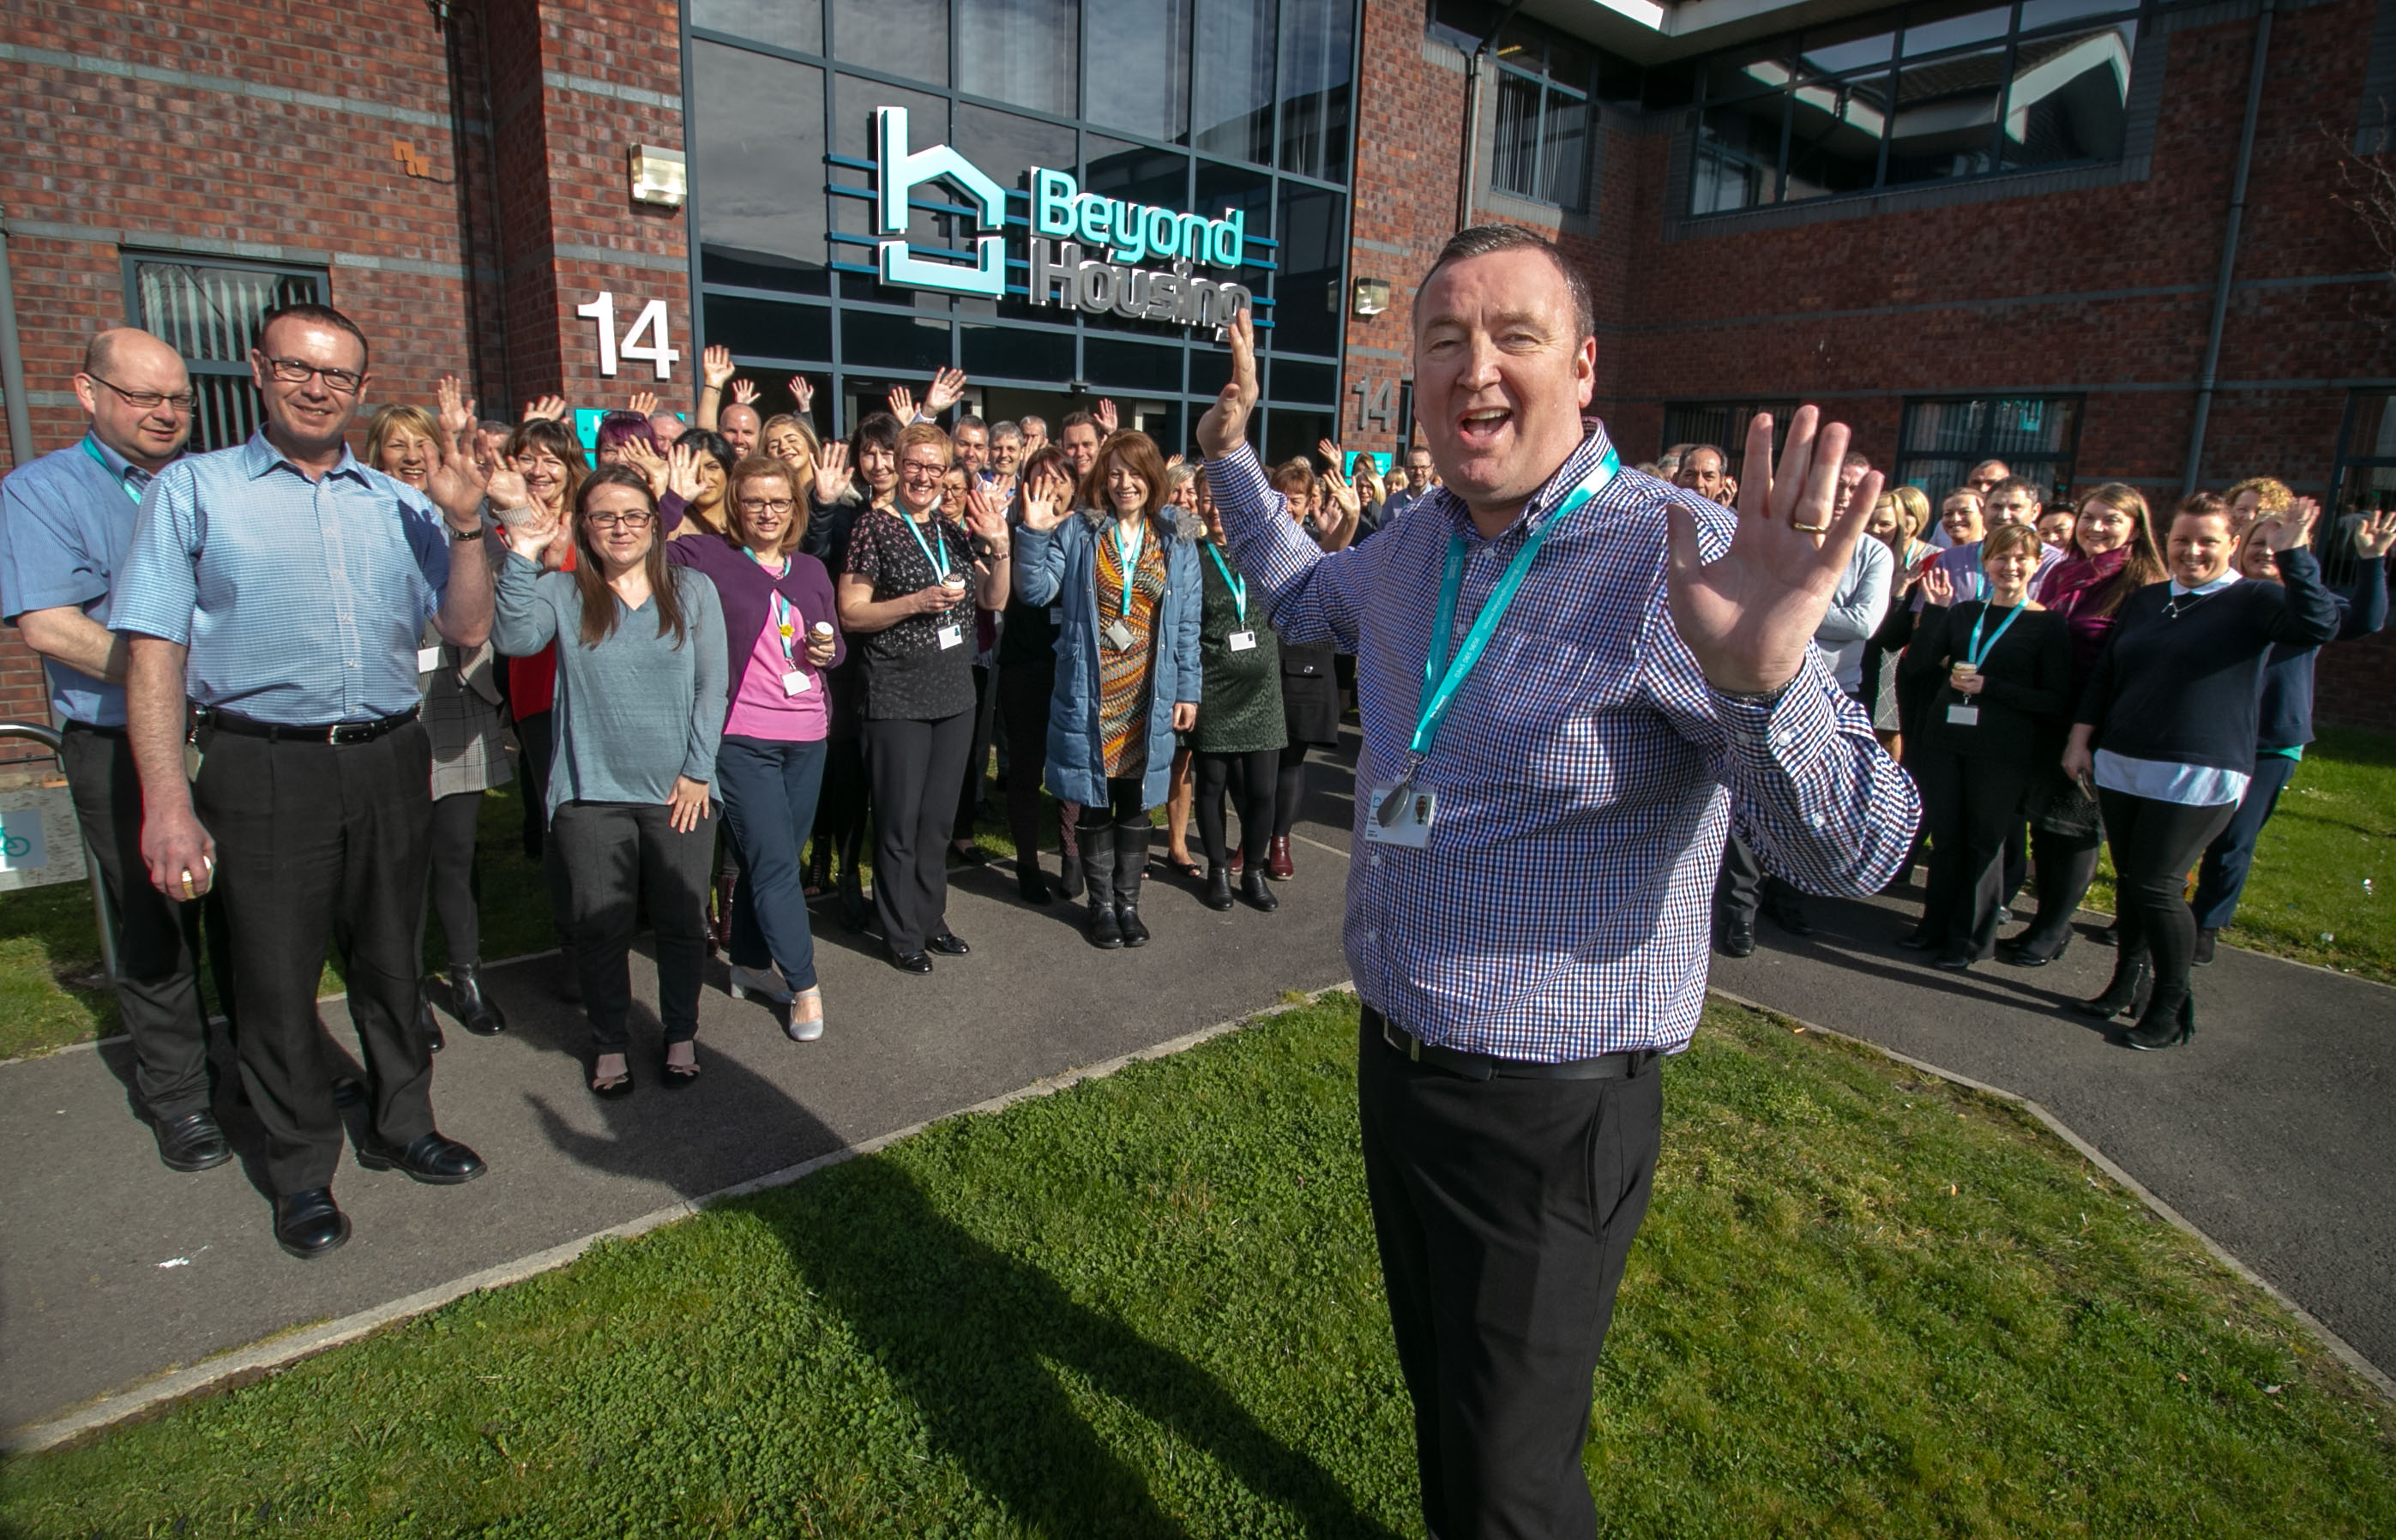 Darts superstar Glen Durrant bids a fond farewell to Beyond Housing colleagues on his last day at work.